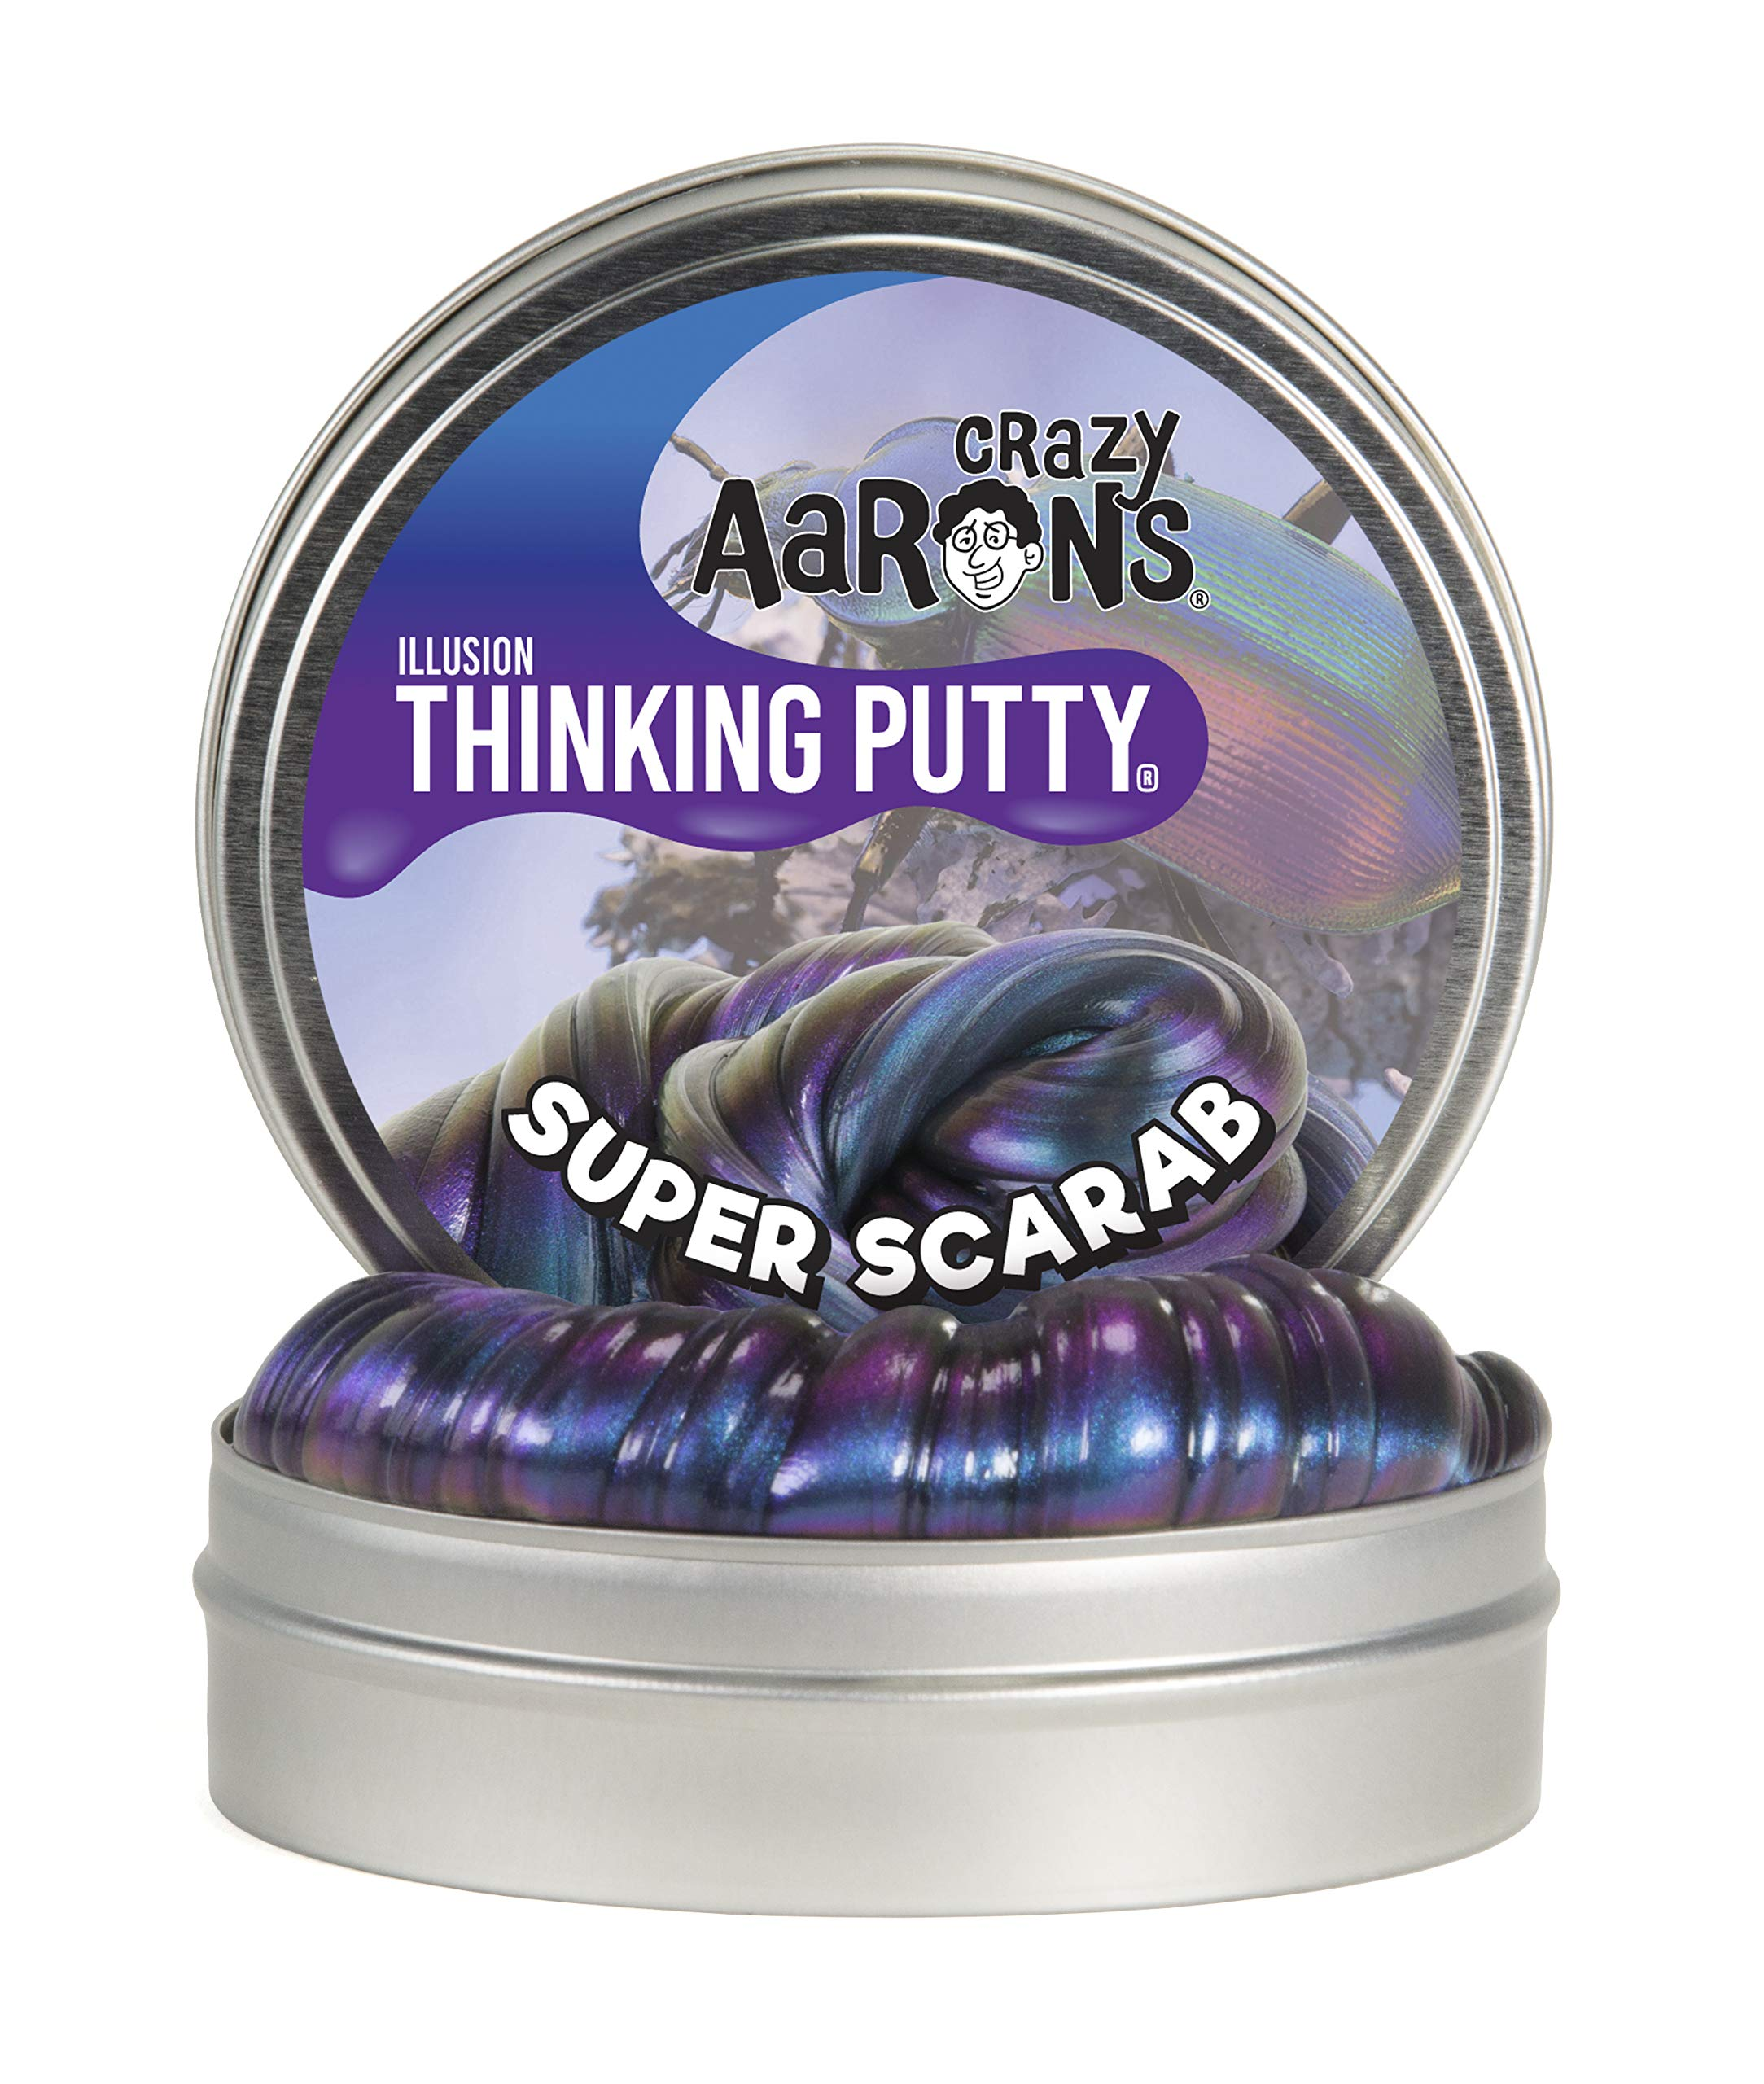 Crazy Aaron's Thinking Putty - Super Illusions - Super Scarab by Crazy Aaron's (Image #1)